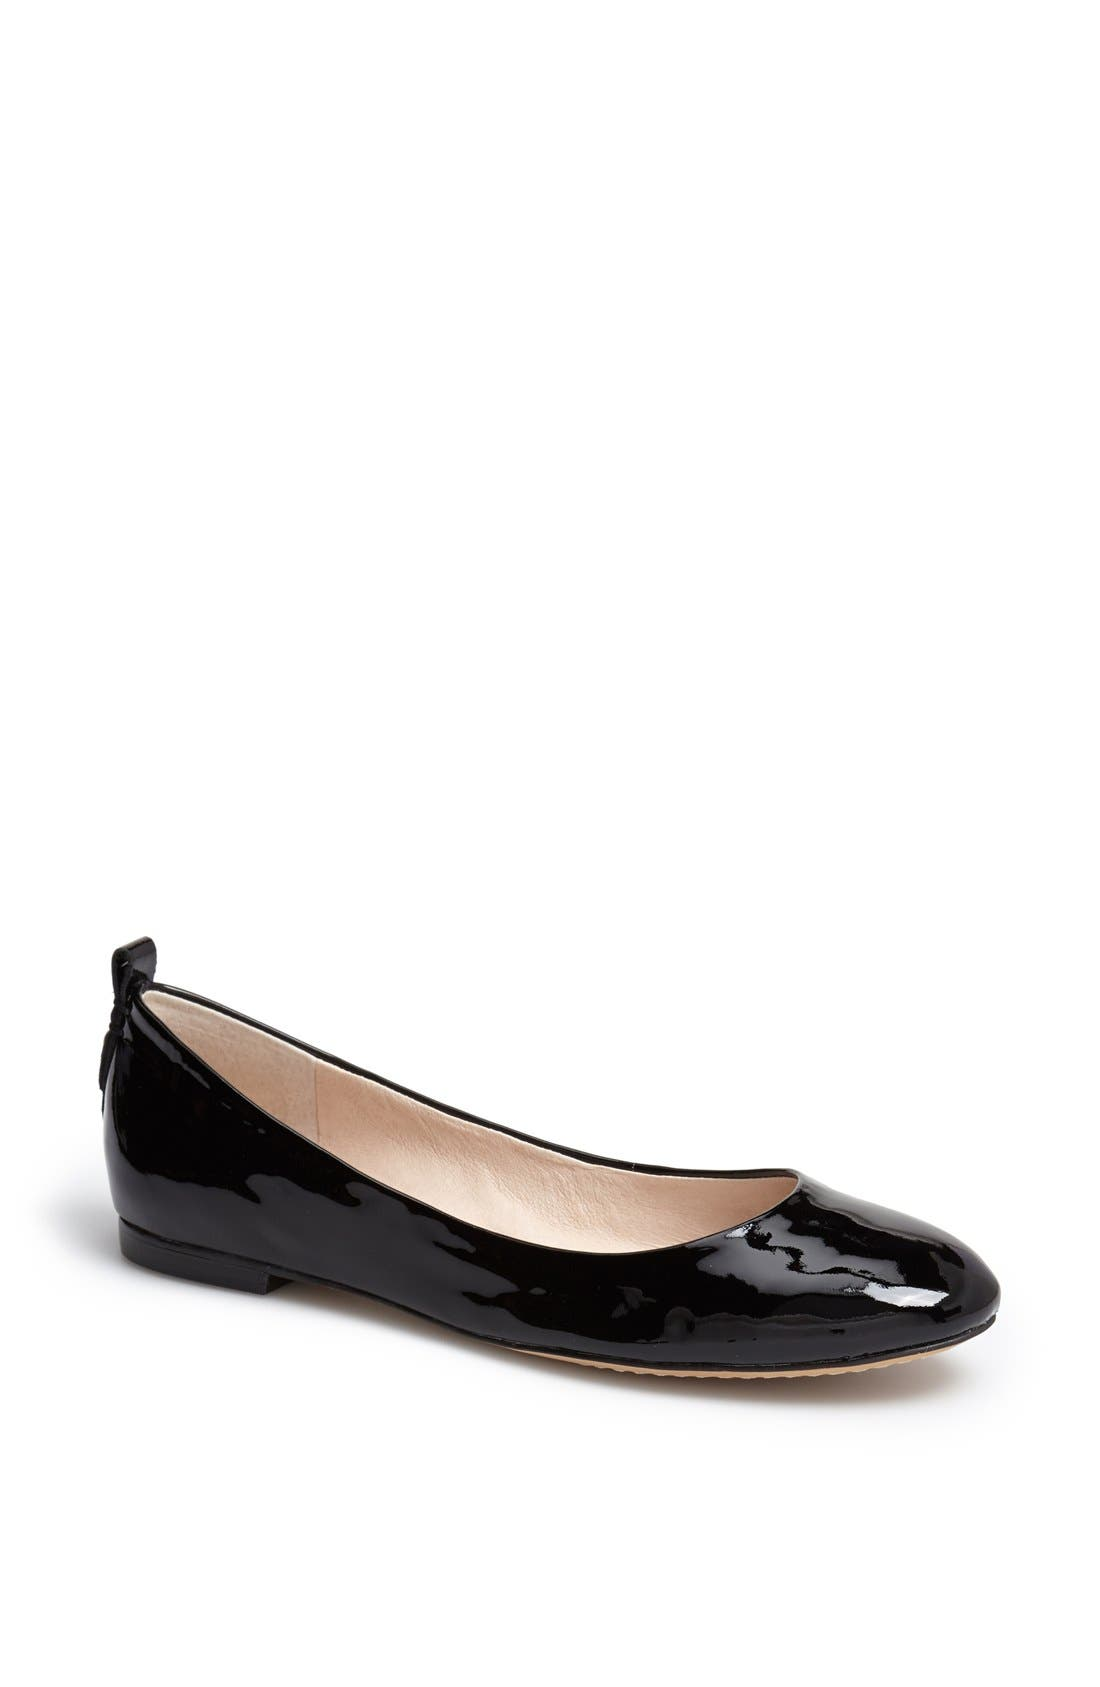 Alternate Image 1 Selected - Vince Camuto 'Benningly' Patent Leather Ballet Flat